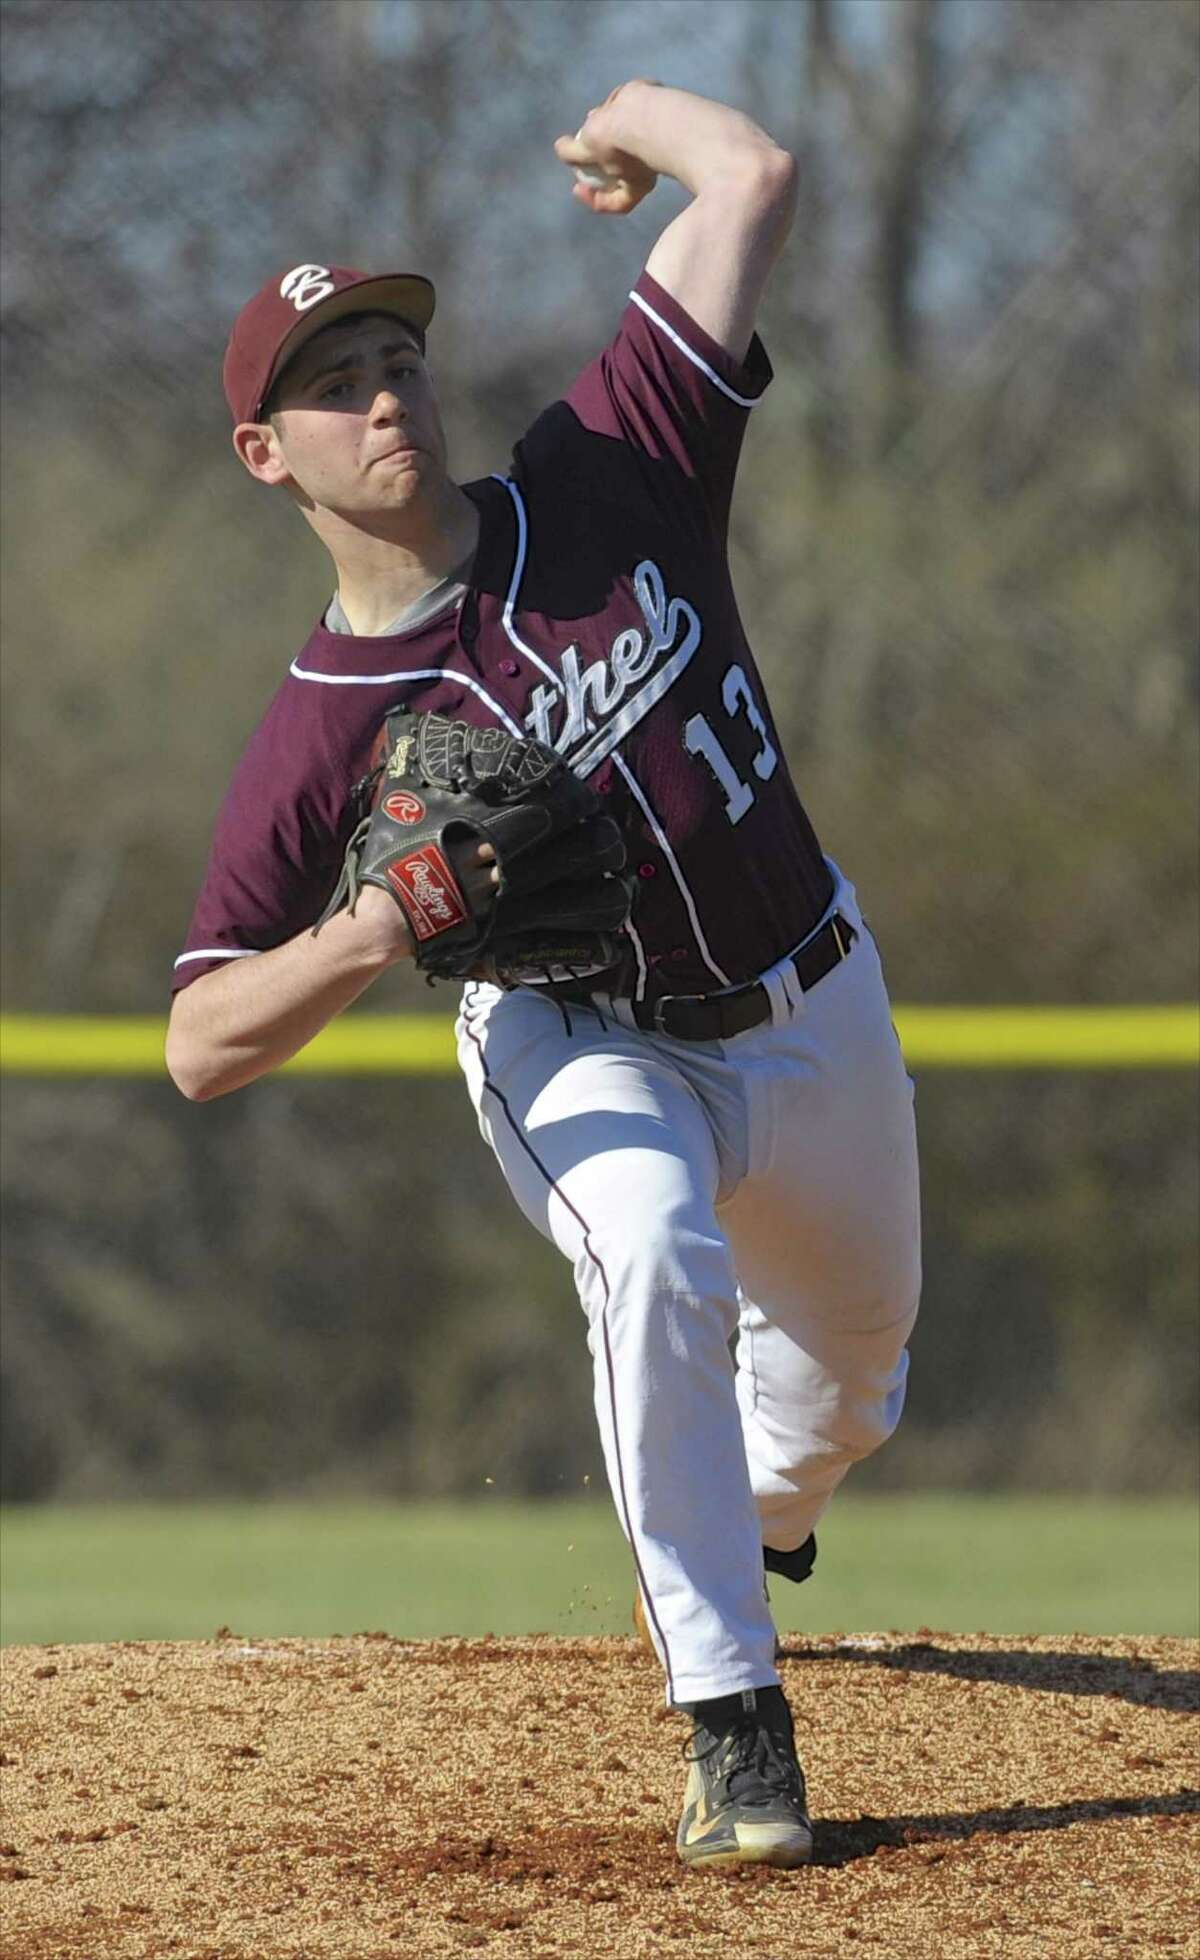 Bethel's Ben Brod (13) pitching in the boys baseball game between Bethel and New Fairfield high schools on Wednesday afternoon, April 13, 2016, at New Fairfield High School, New Fairfield, Conn.